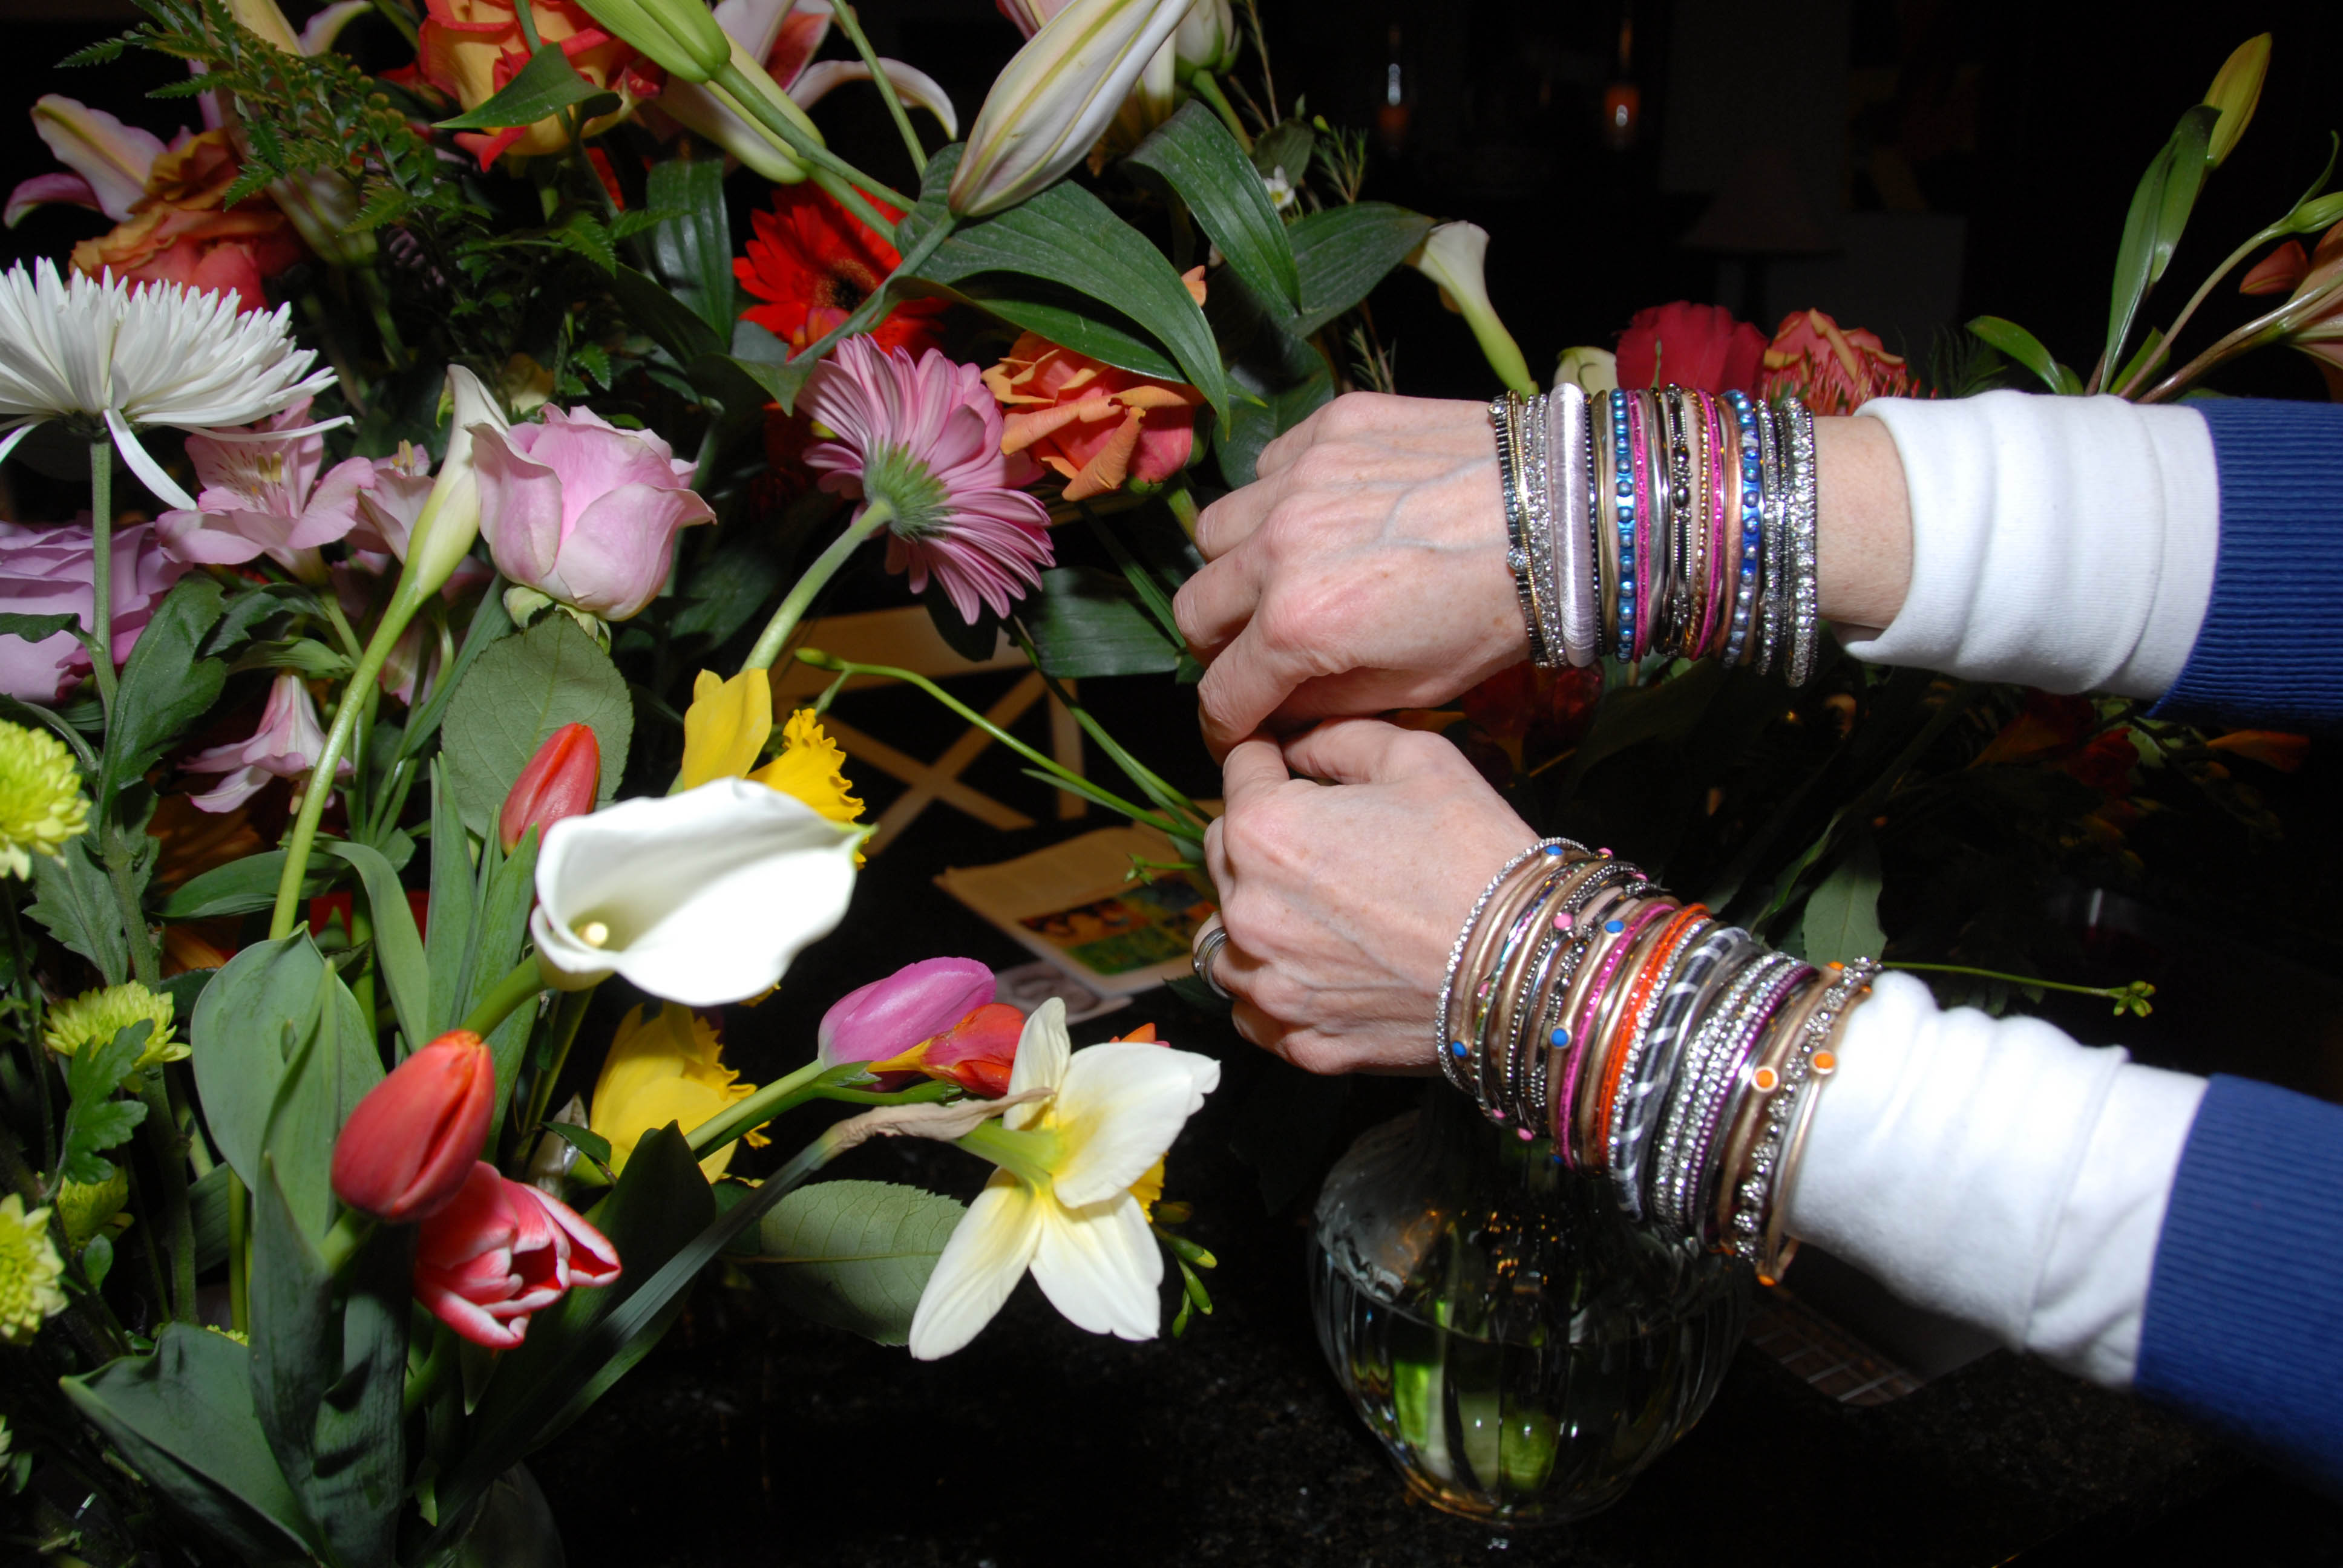 Bracelets and flowers